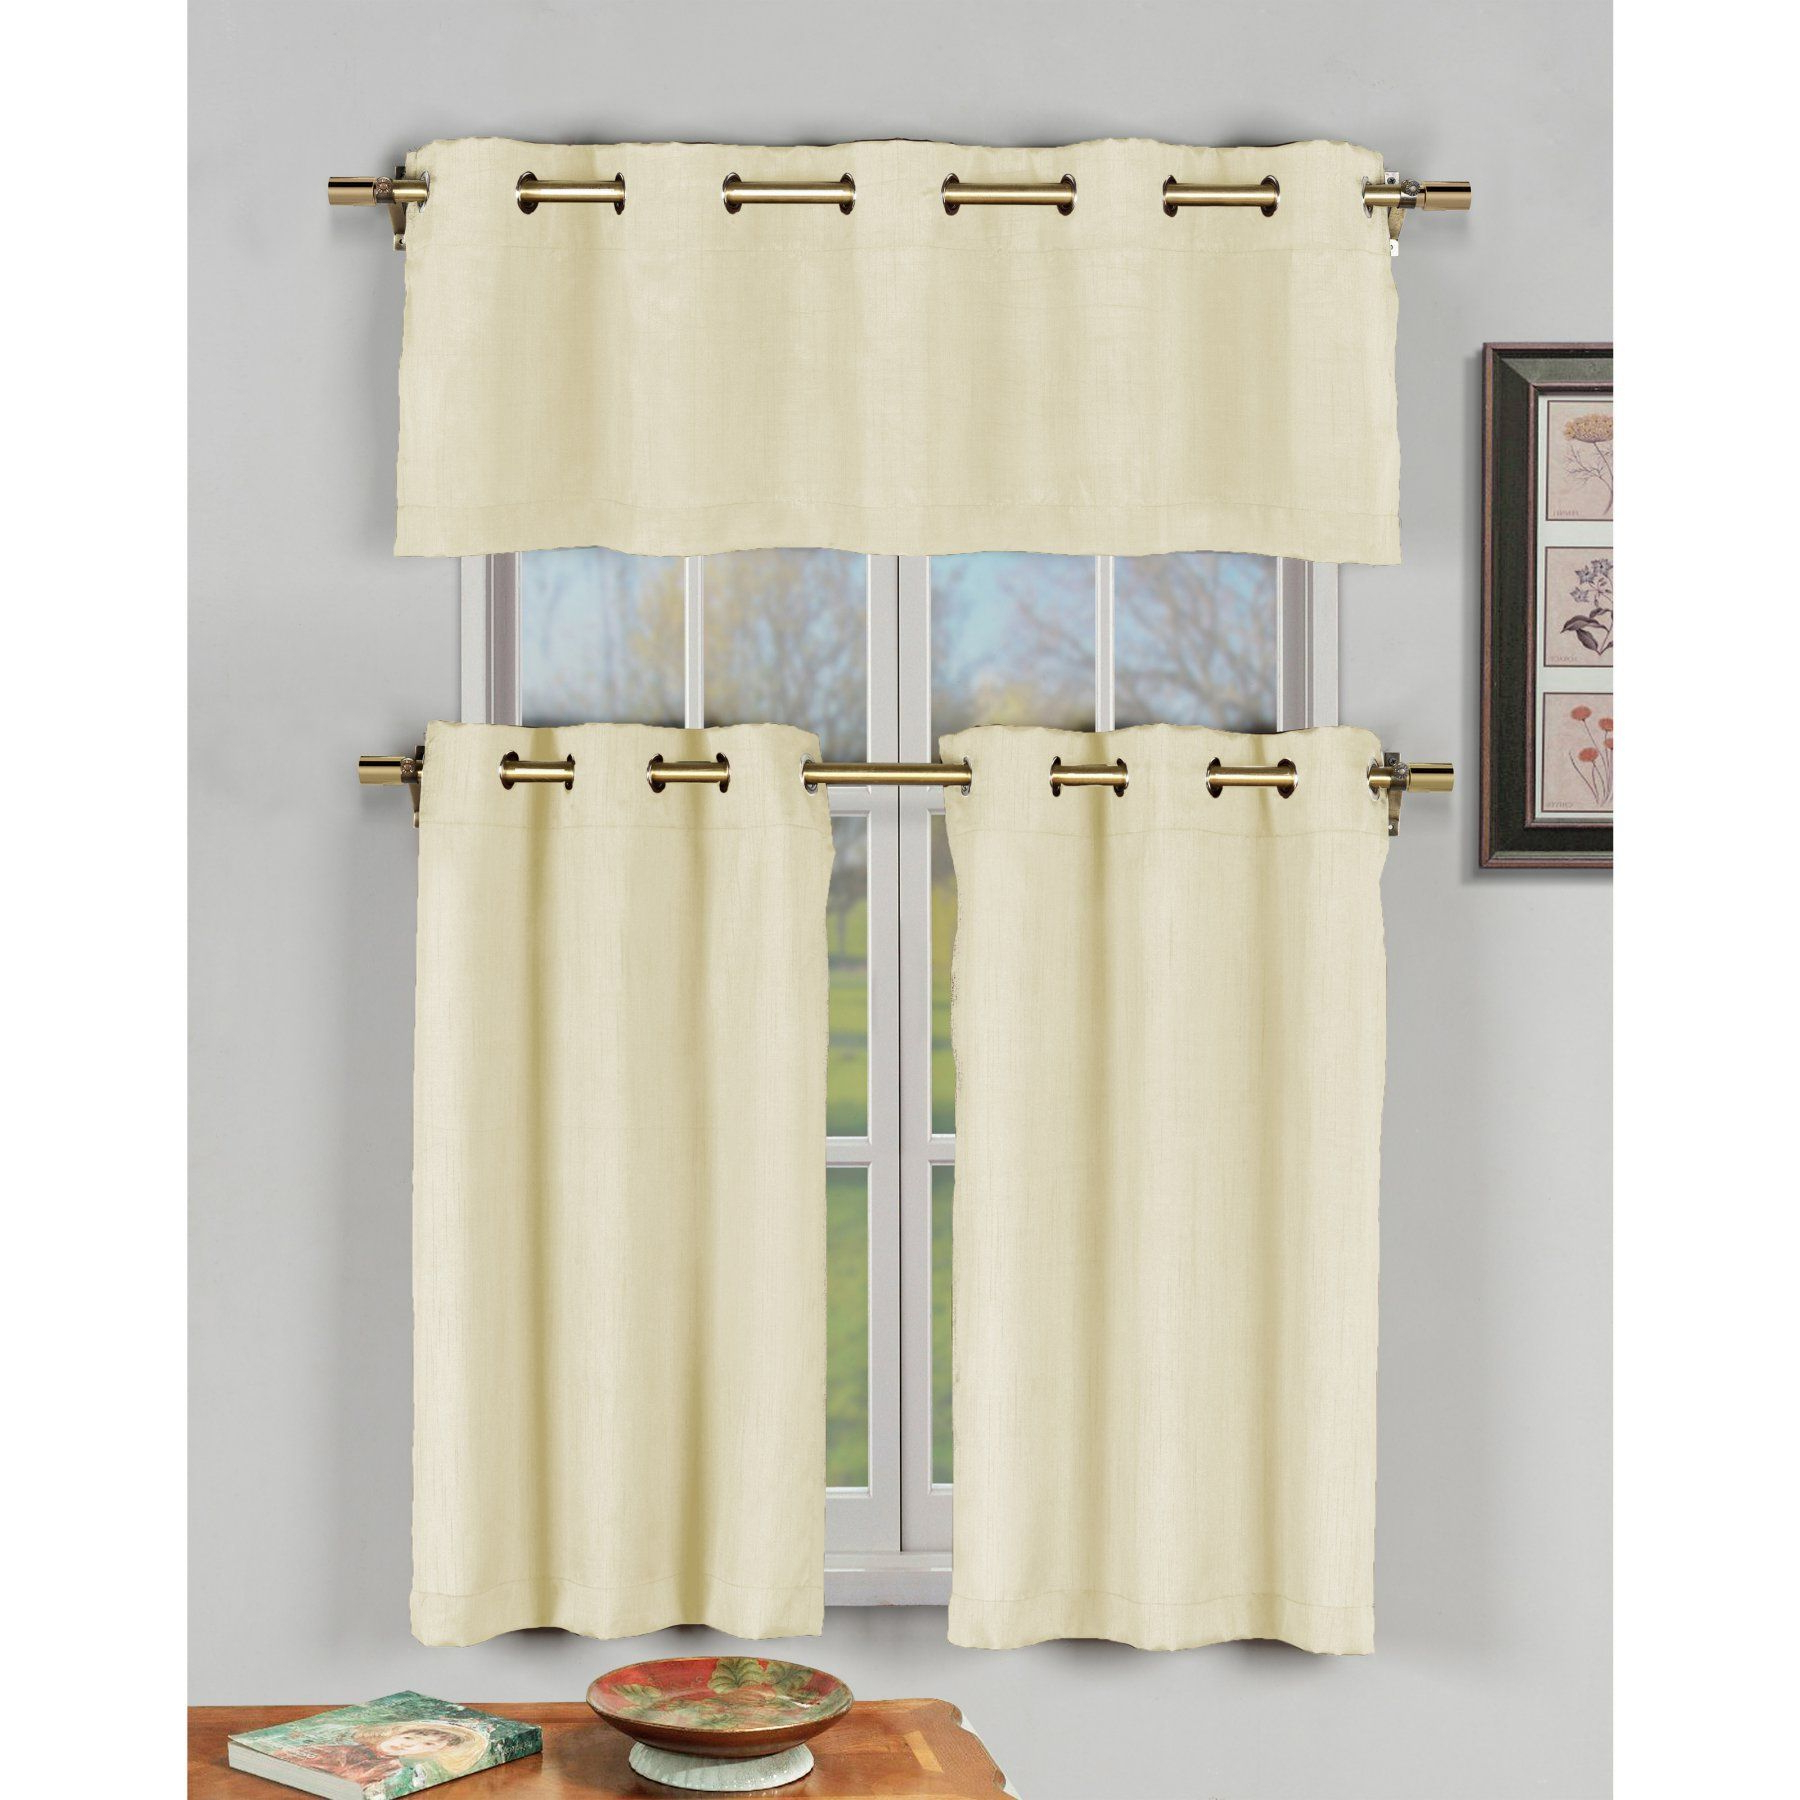 Well Liked Faux Silk 3 Piece Kitchen Curtain Sets With Regard To Duck River Agnes Faux Silk 3 Piece Grommet Kitchen Curtain (View 13 of 20)